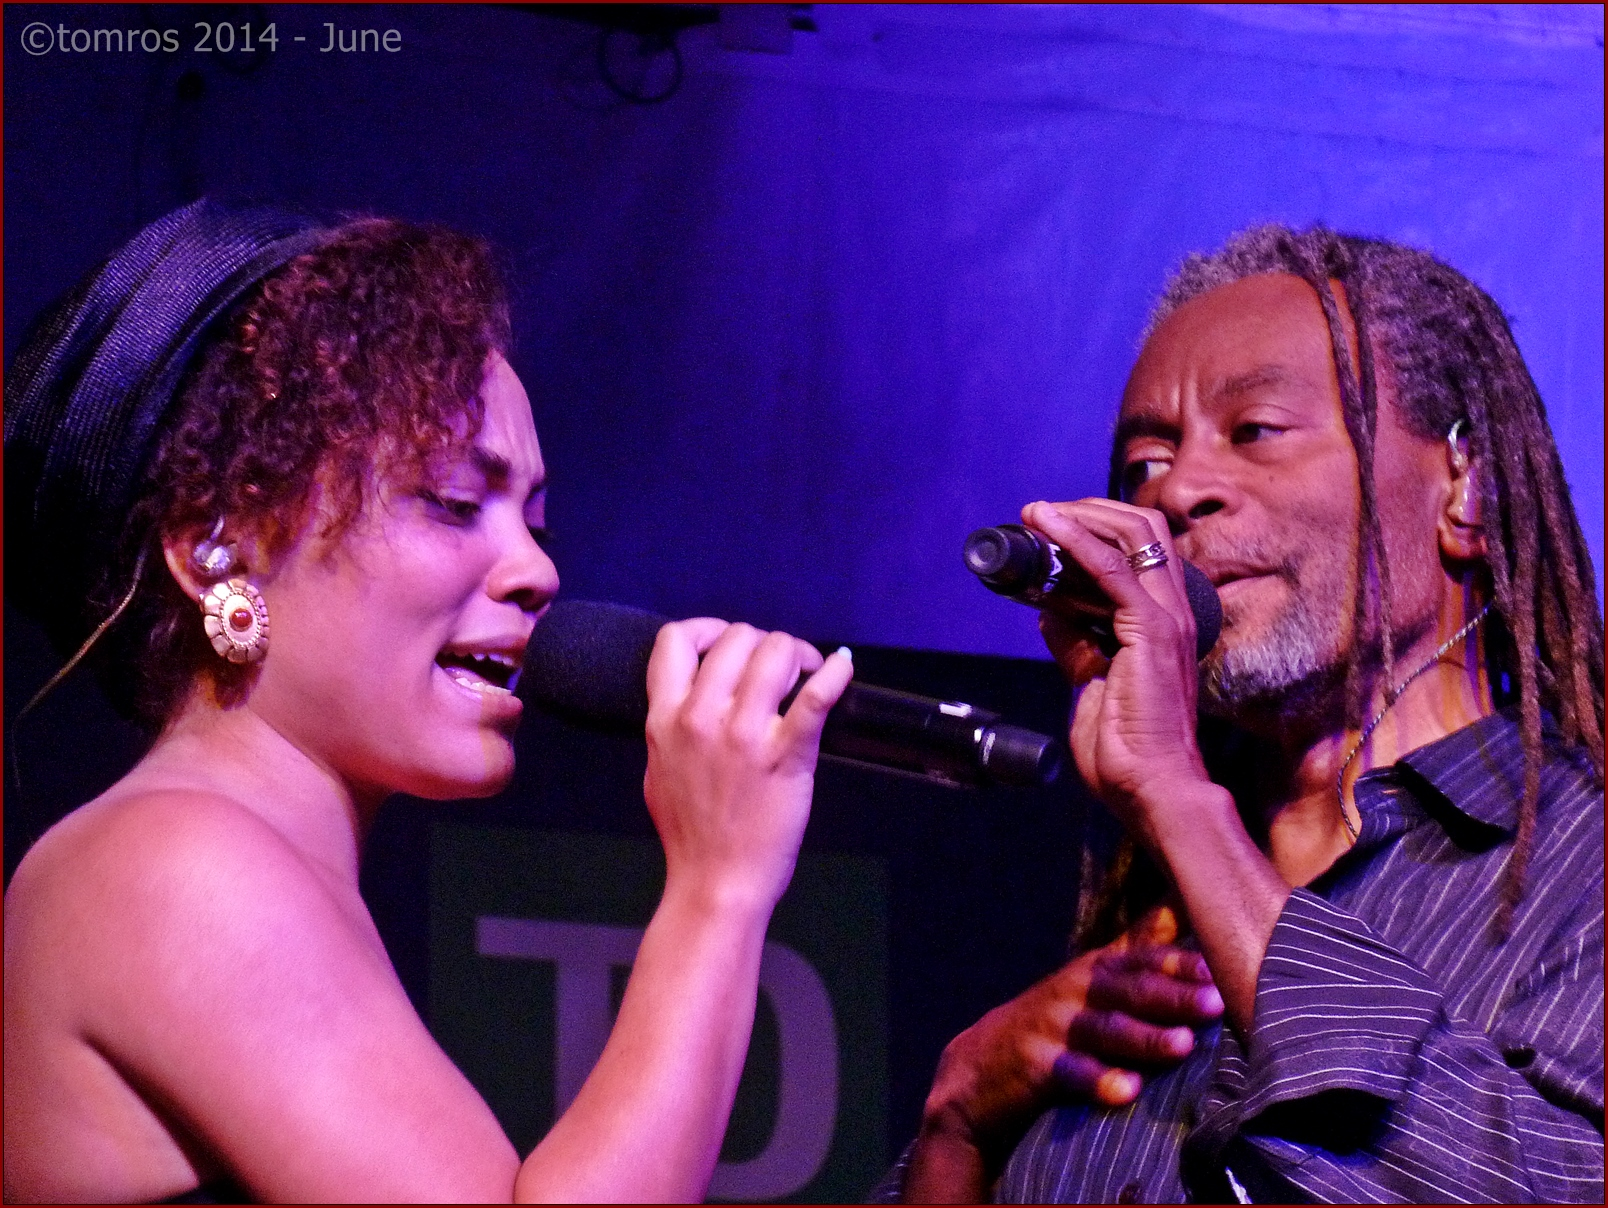 Bobby Mcferrin with Madison (Daughter) at Toronto Jazz Festival, June 27, 2014.